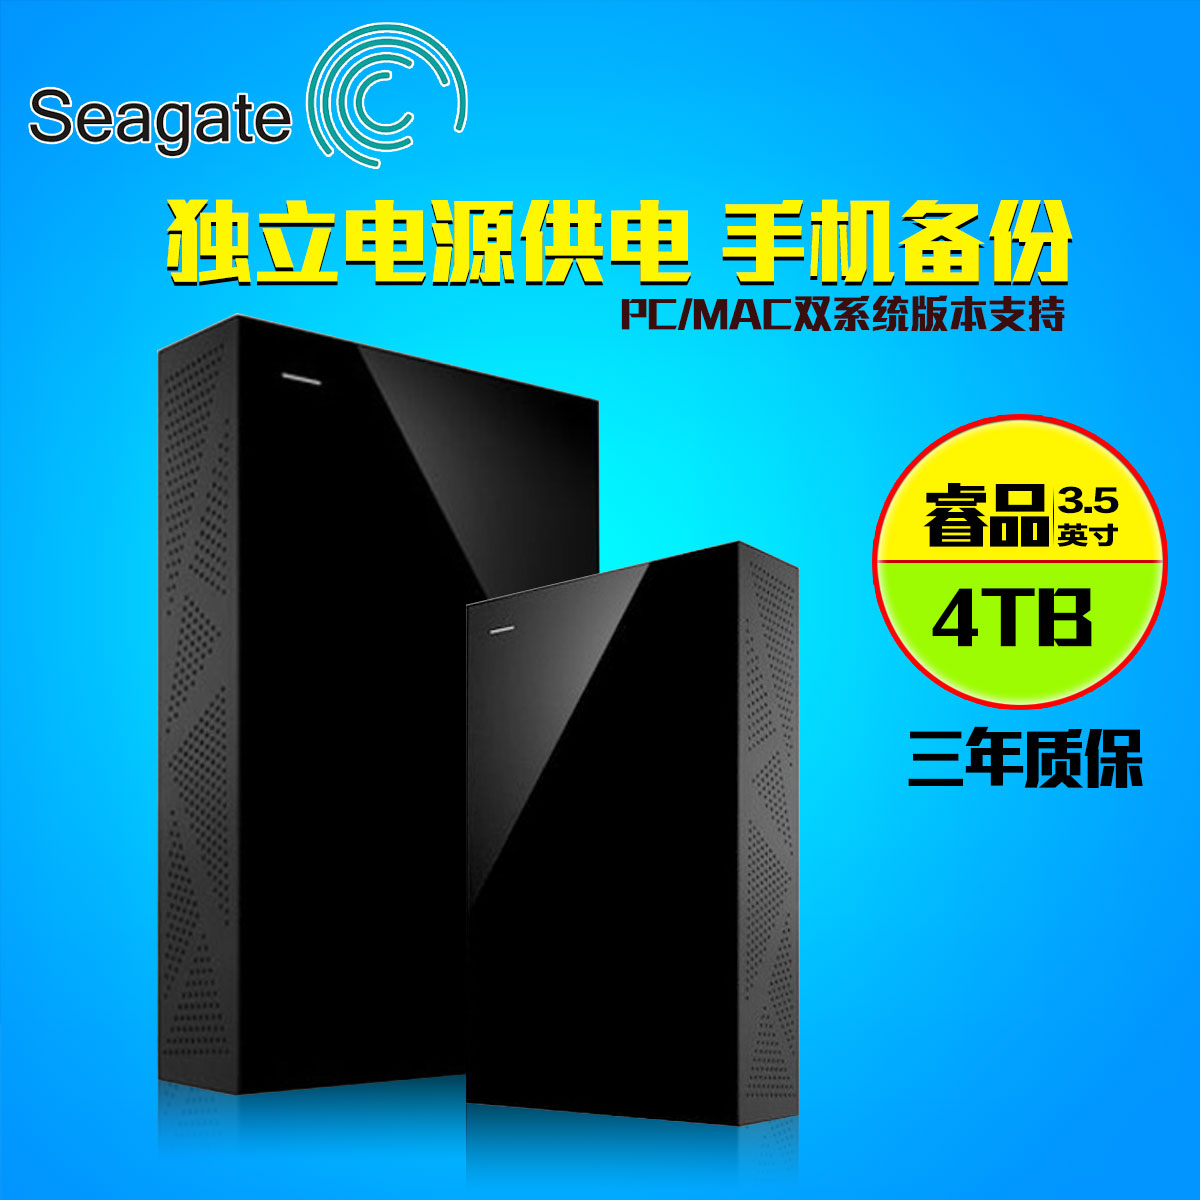 Съемный жесткий диск Seagate 4T/3.5 (STDT4000300) tc electronic dark matter distortion